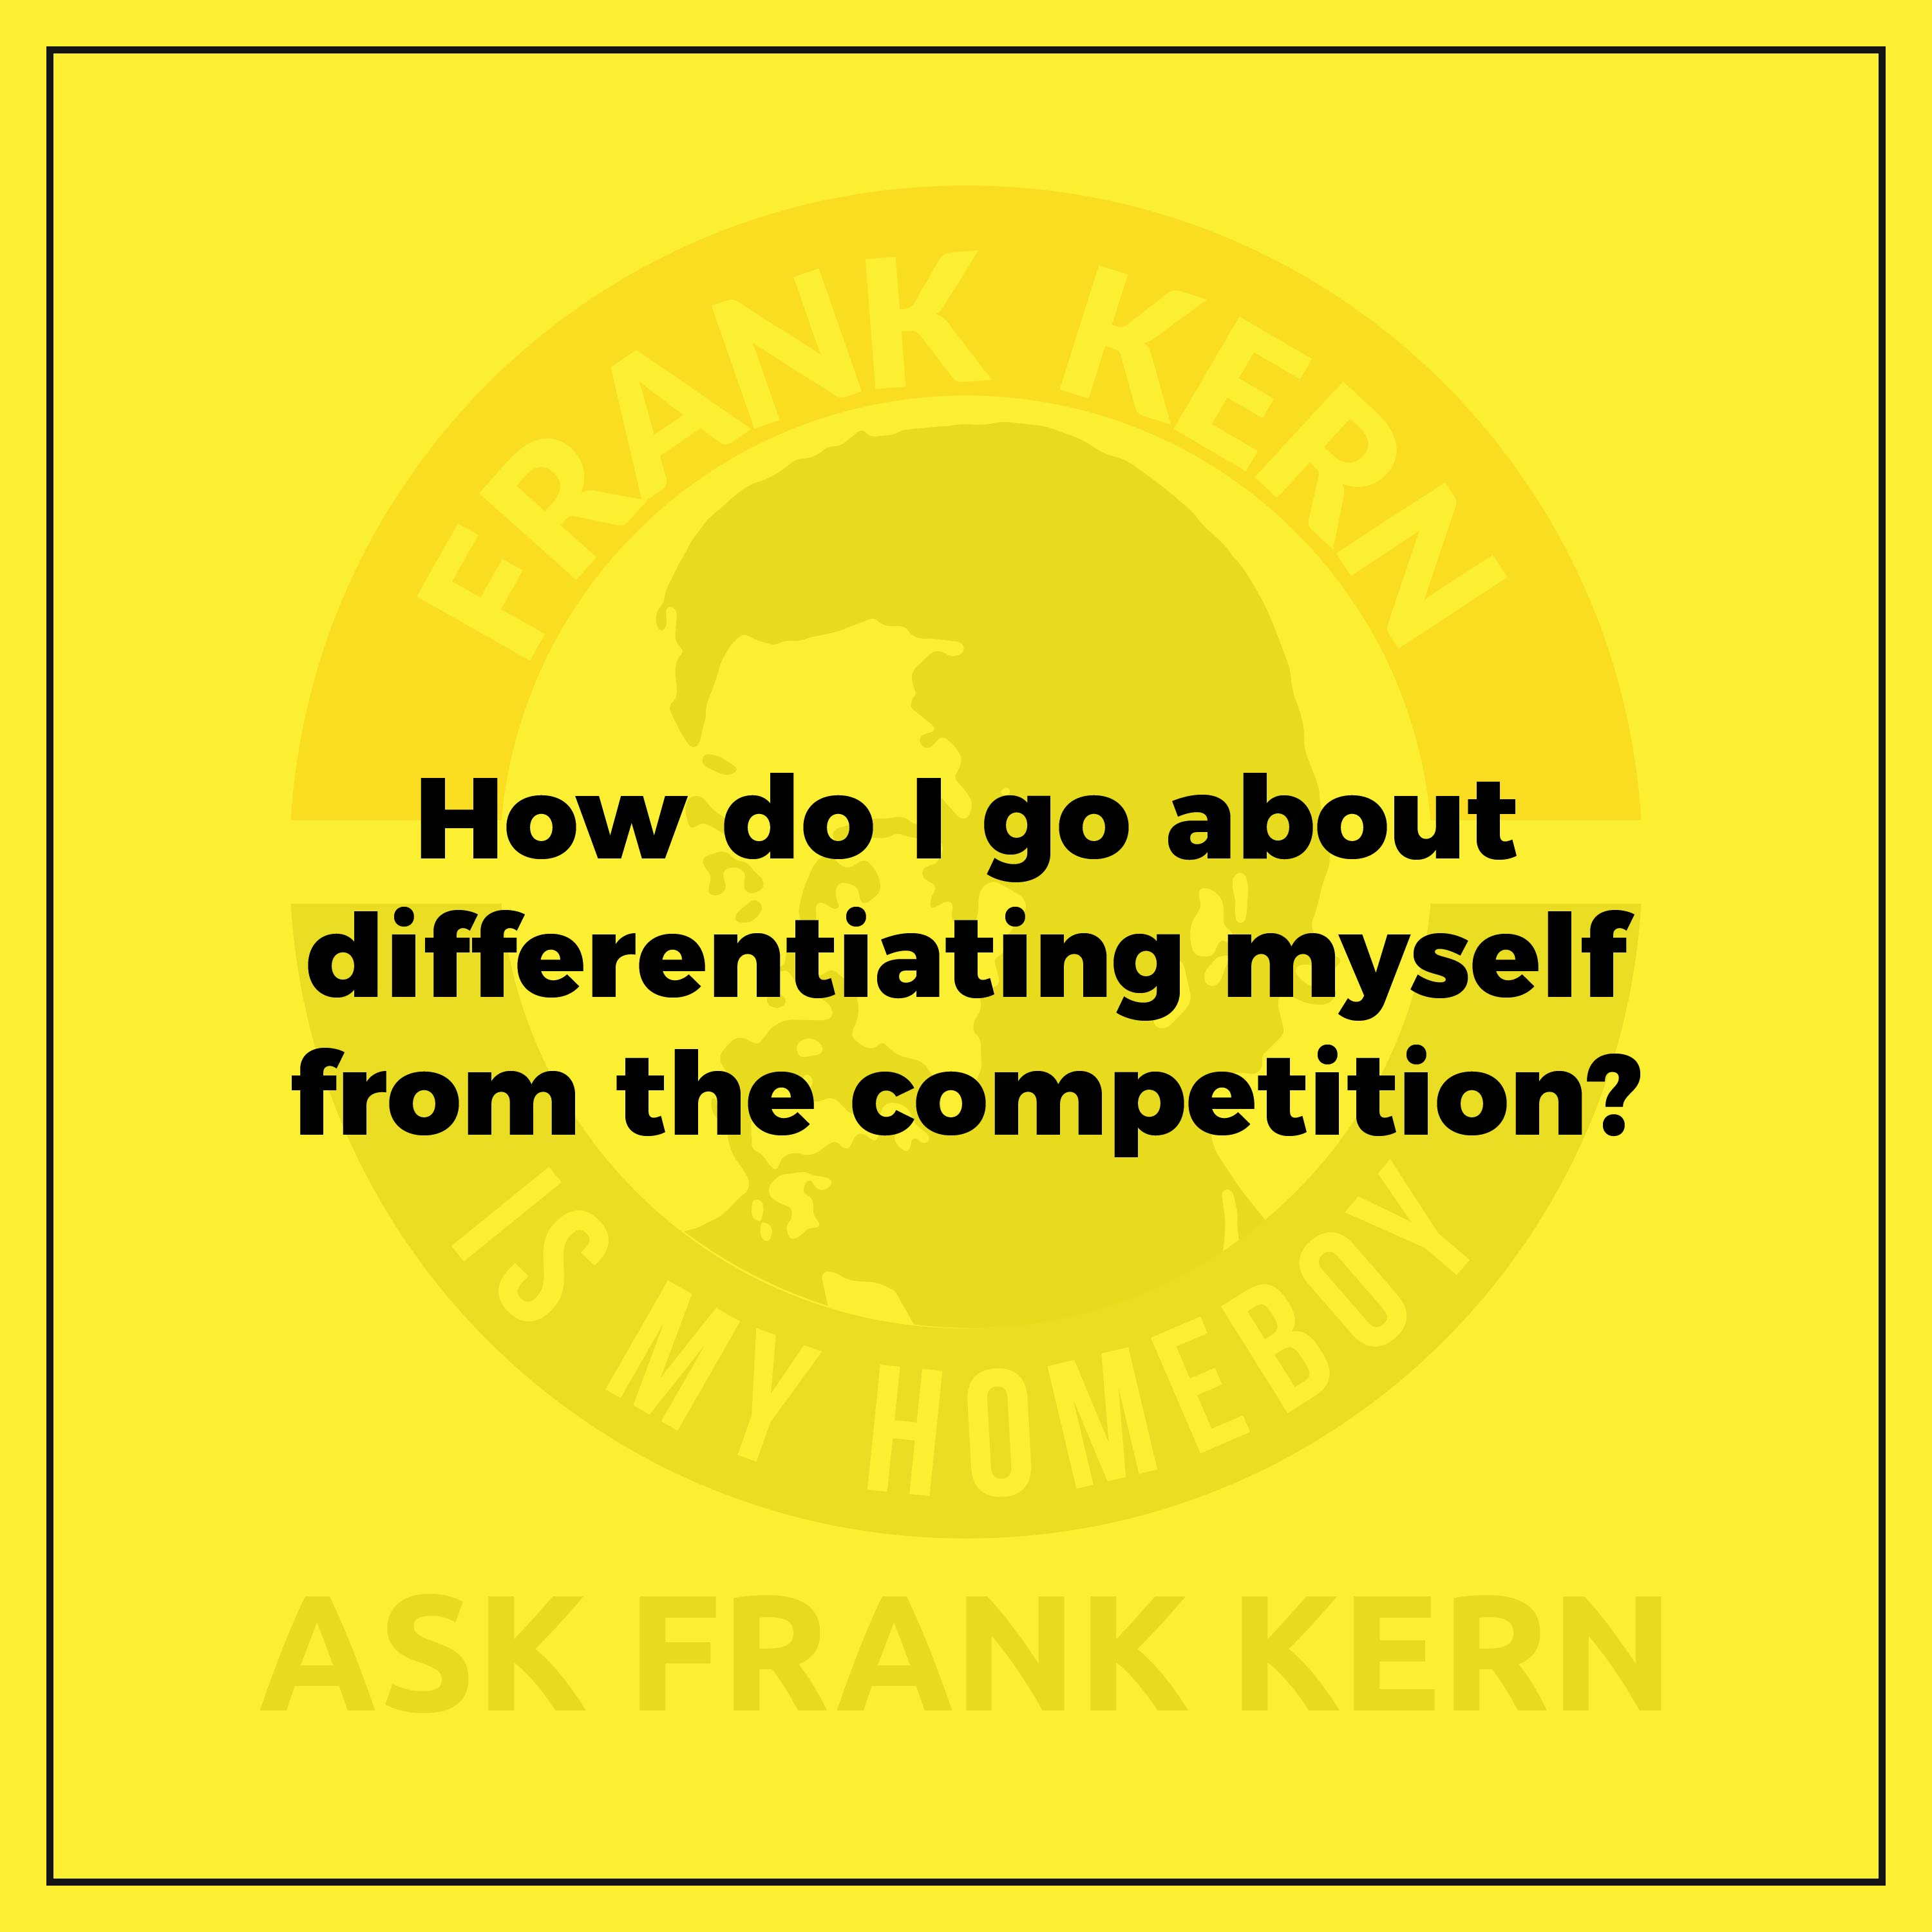 How do I go about differentiating myself from the competition?